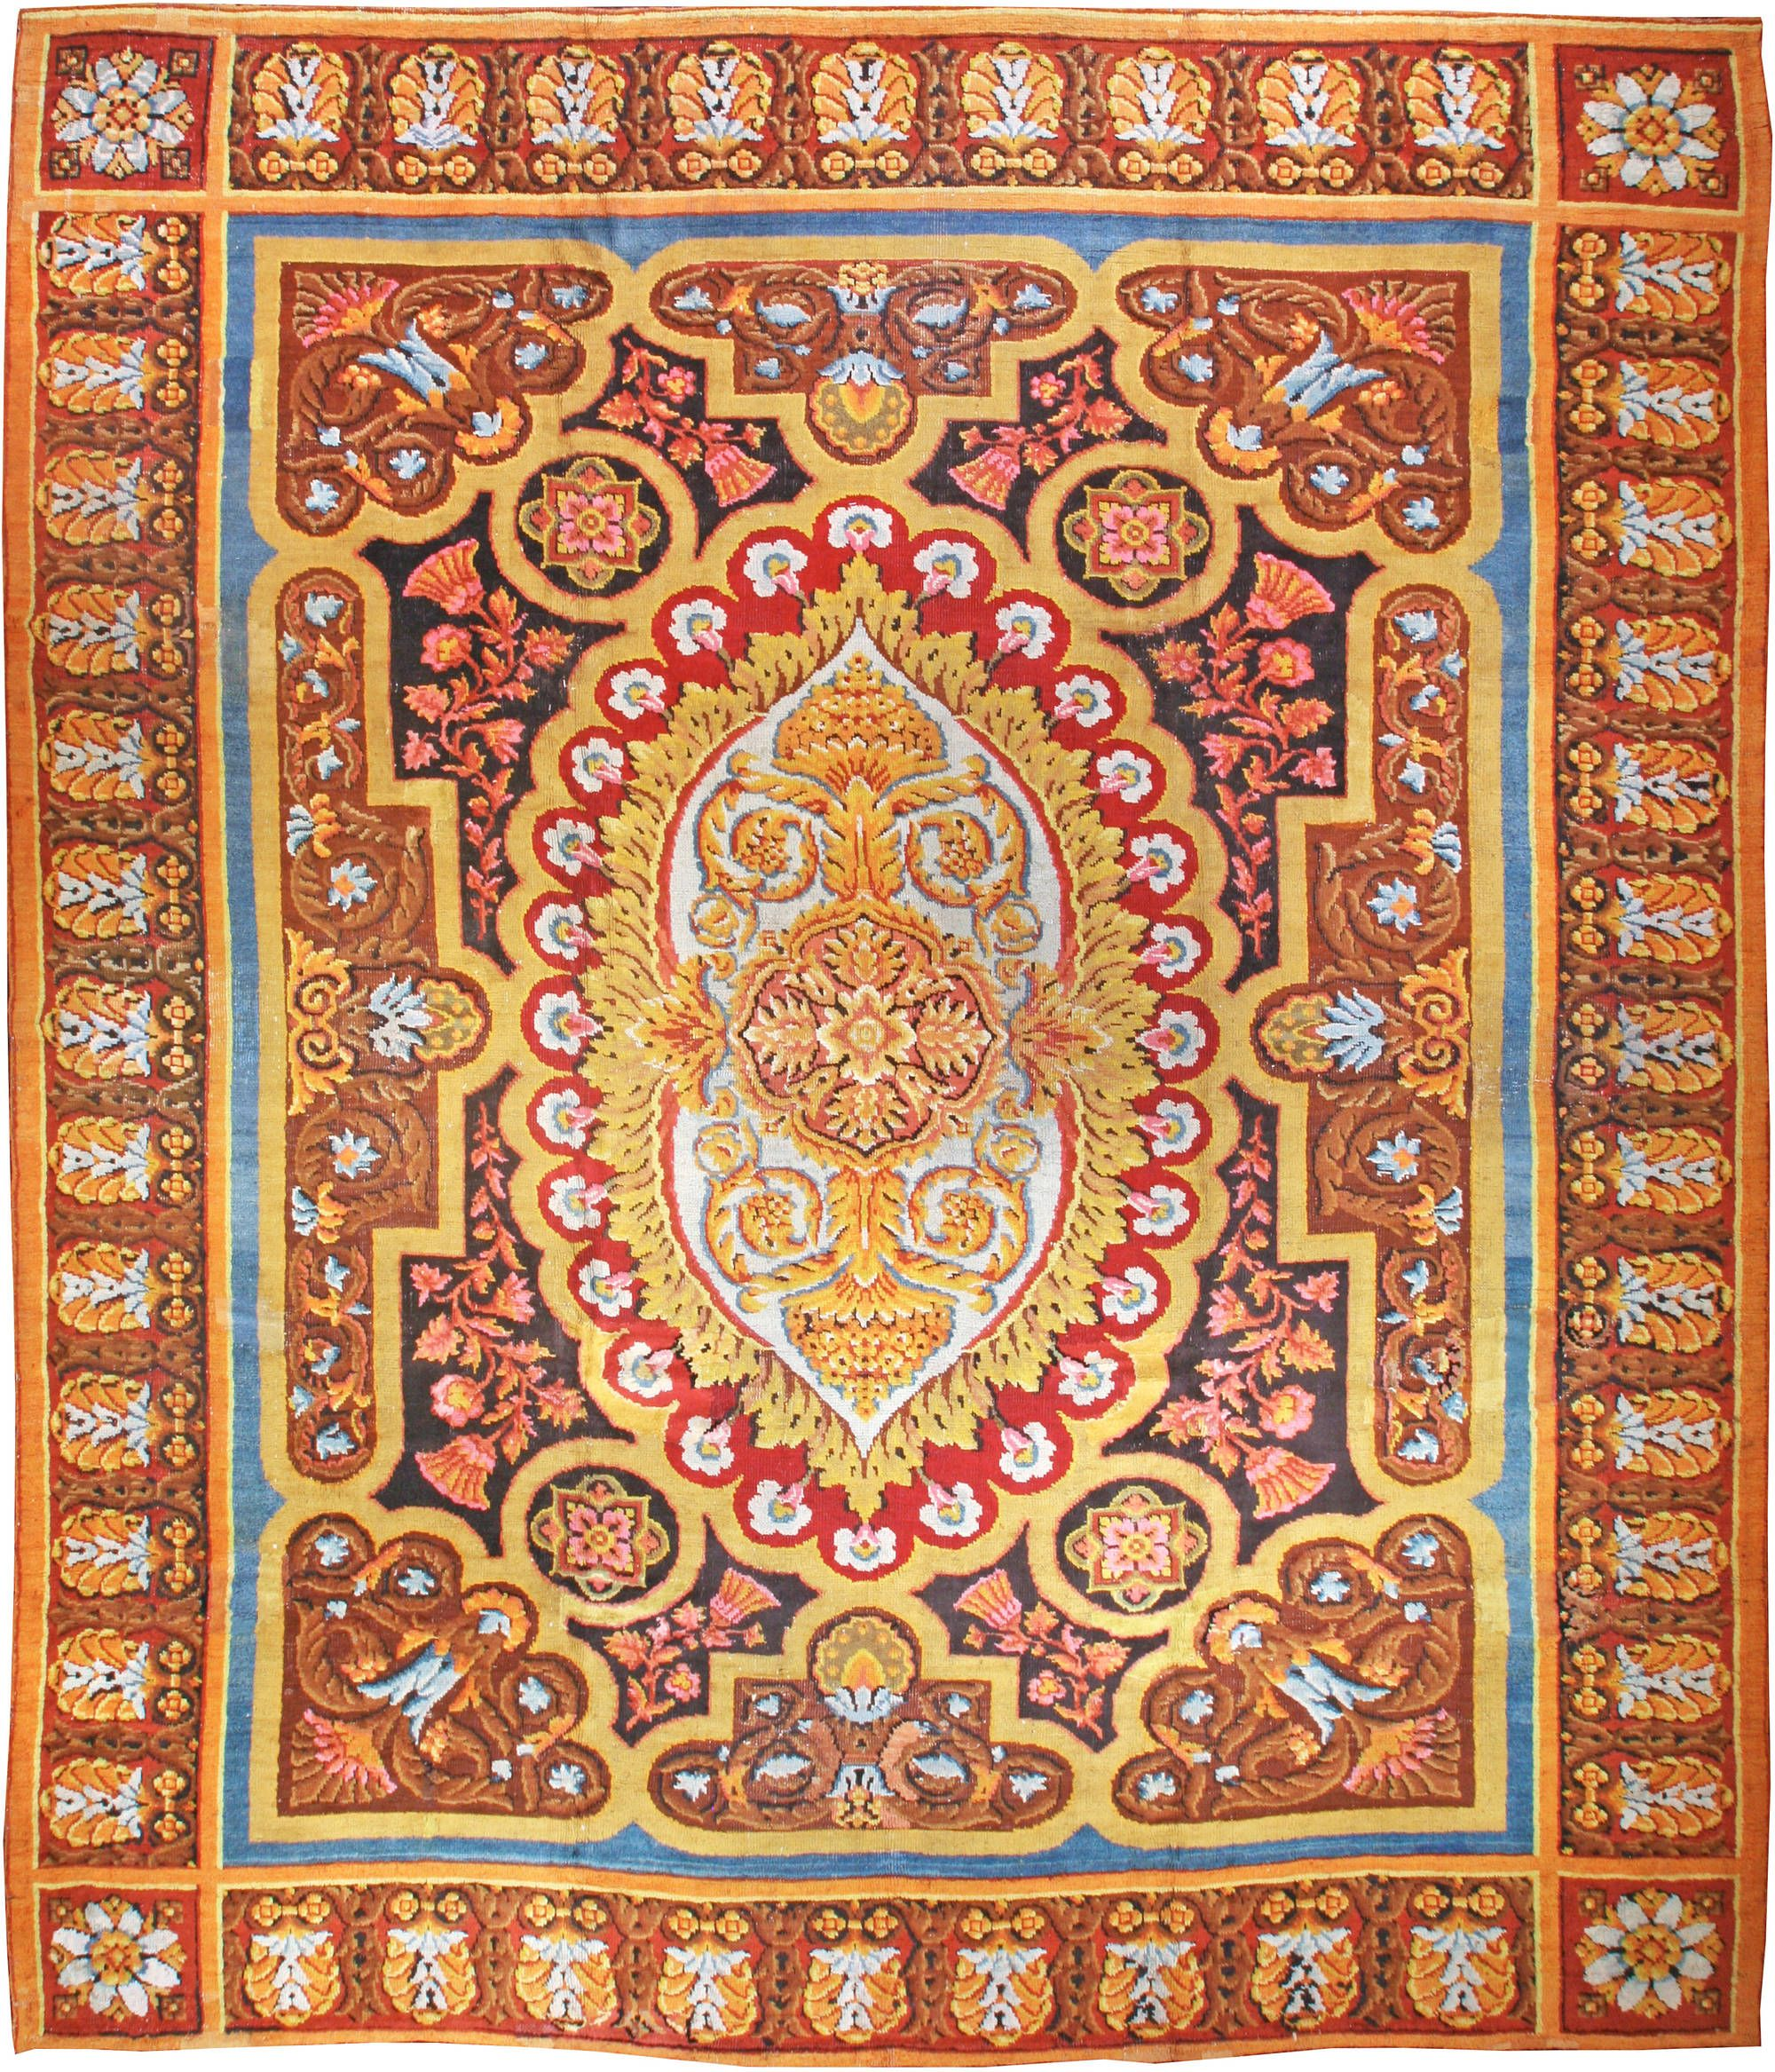 Antique Rug Antique Carpets Antique Persian Rugs Tabriz Rugs Custom Rugs English Axminster Carpet Bb1316 Axminster Carpets Antique Carpets Rugs On Carpet